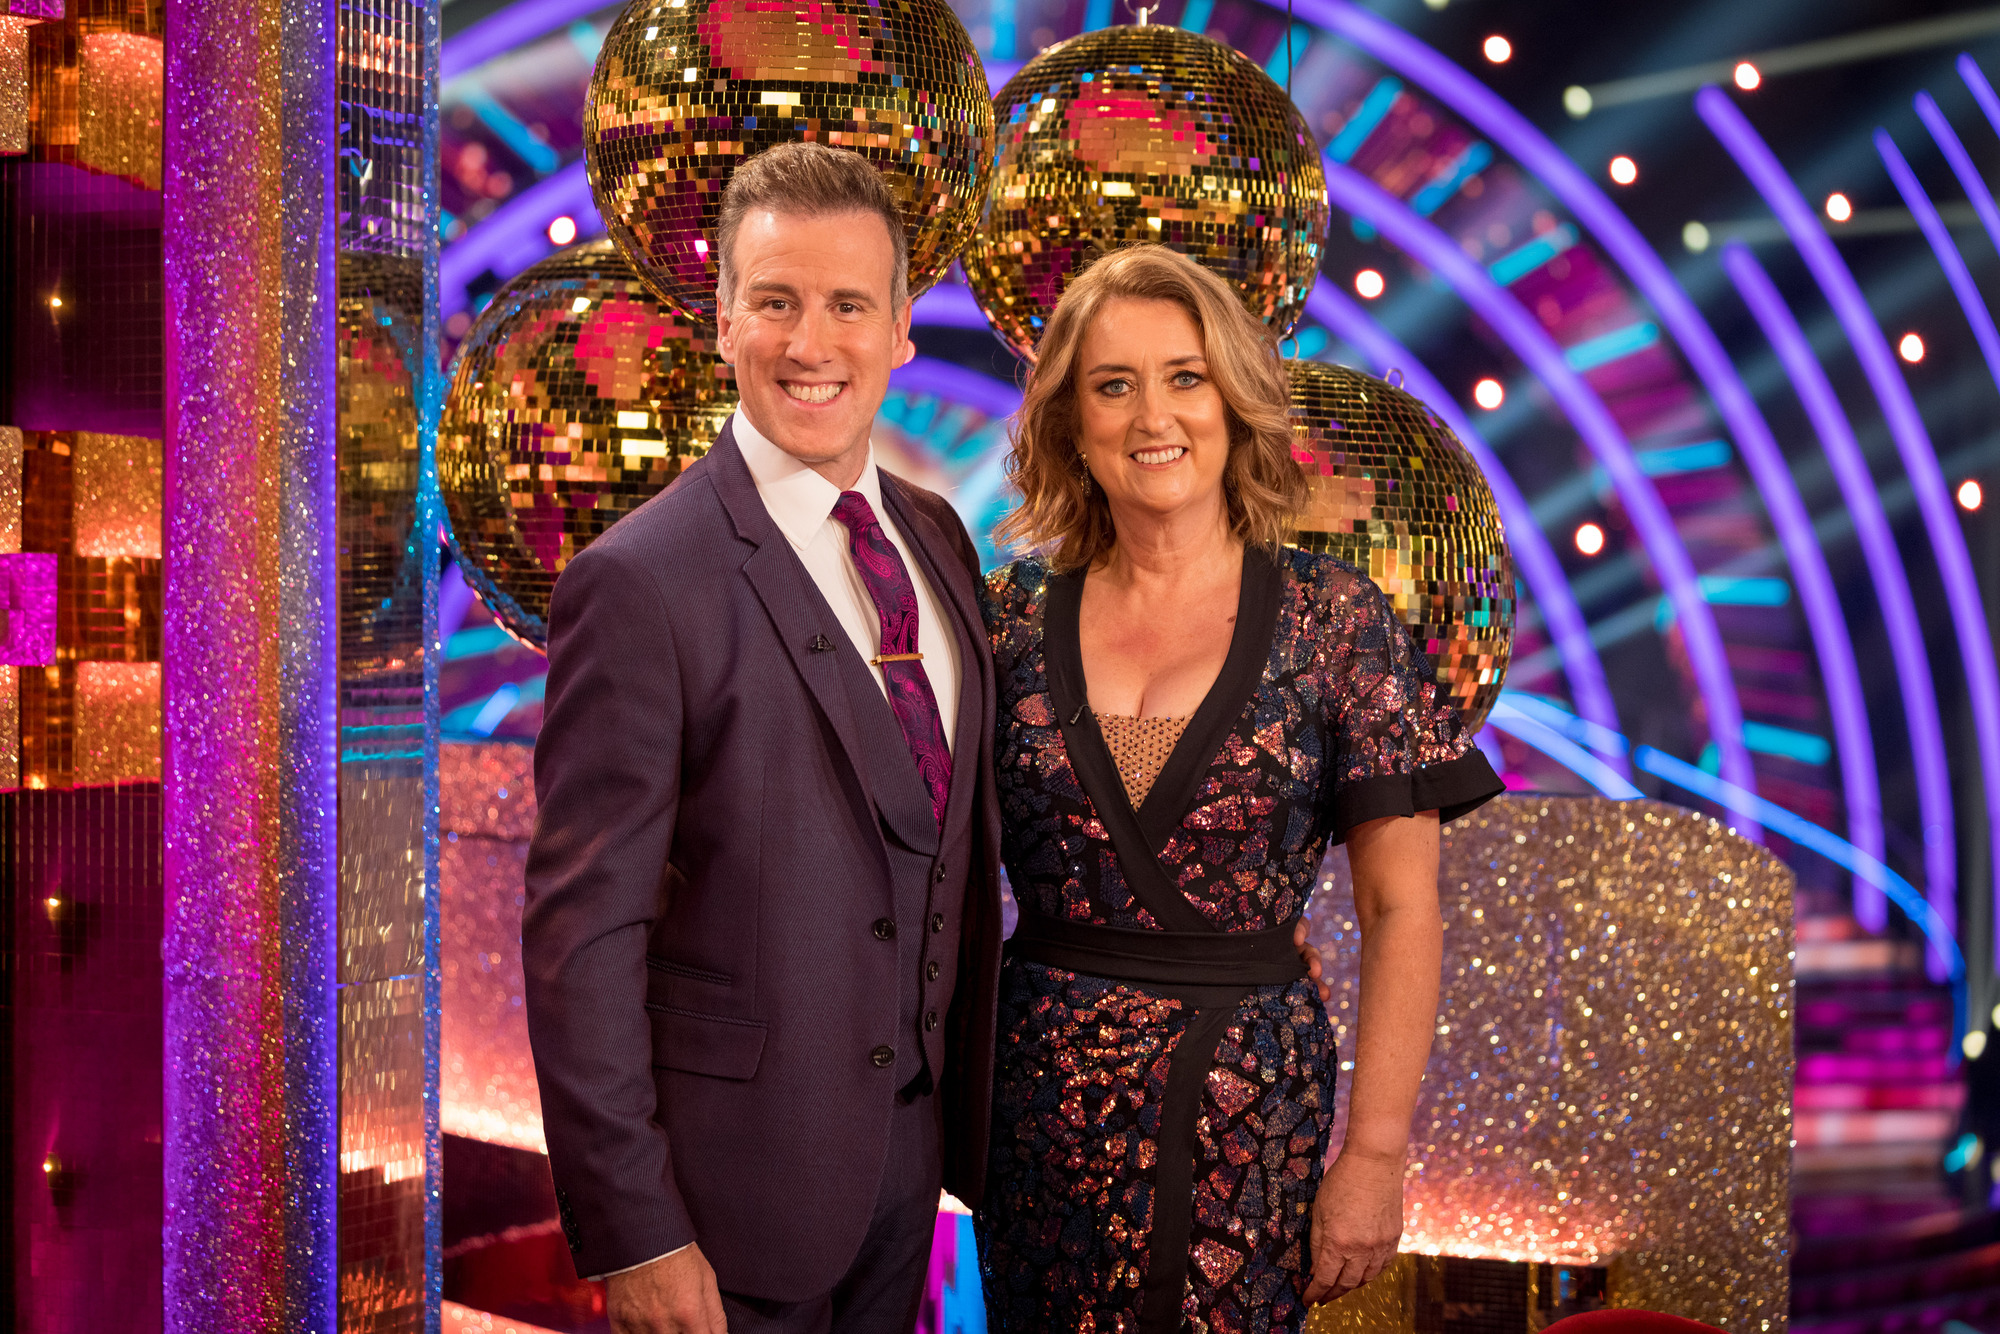 Anton Du Beke is confirmed as guest judge on Strictly